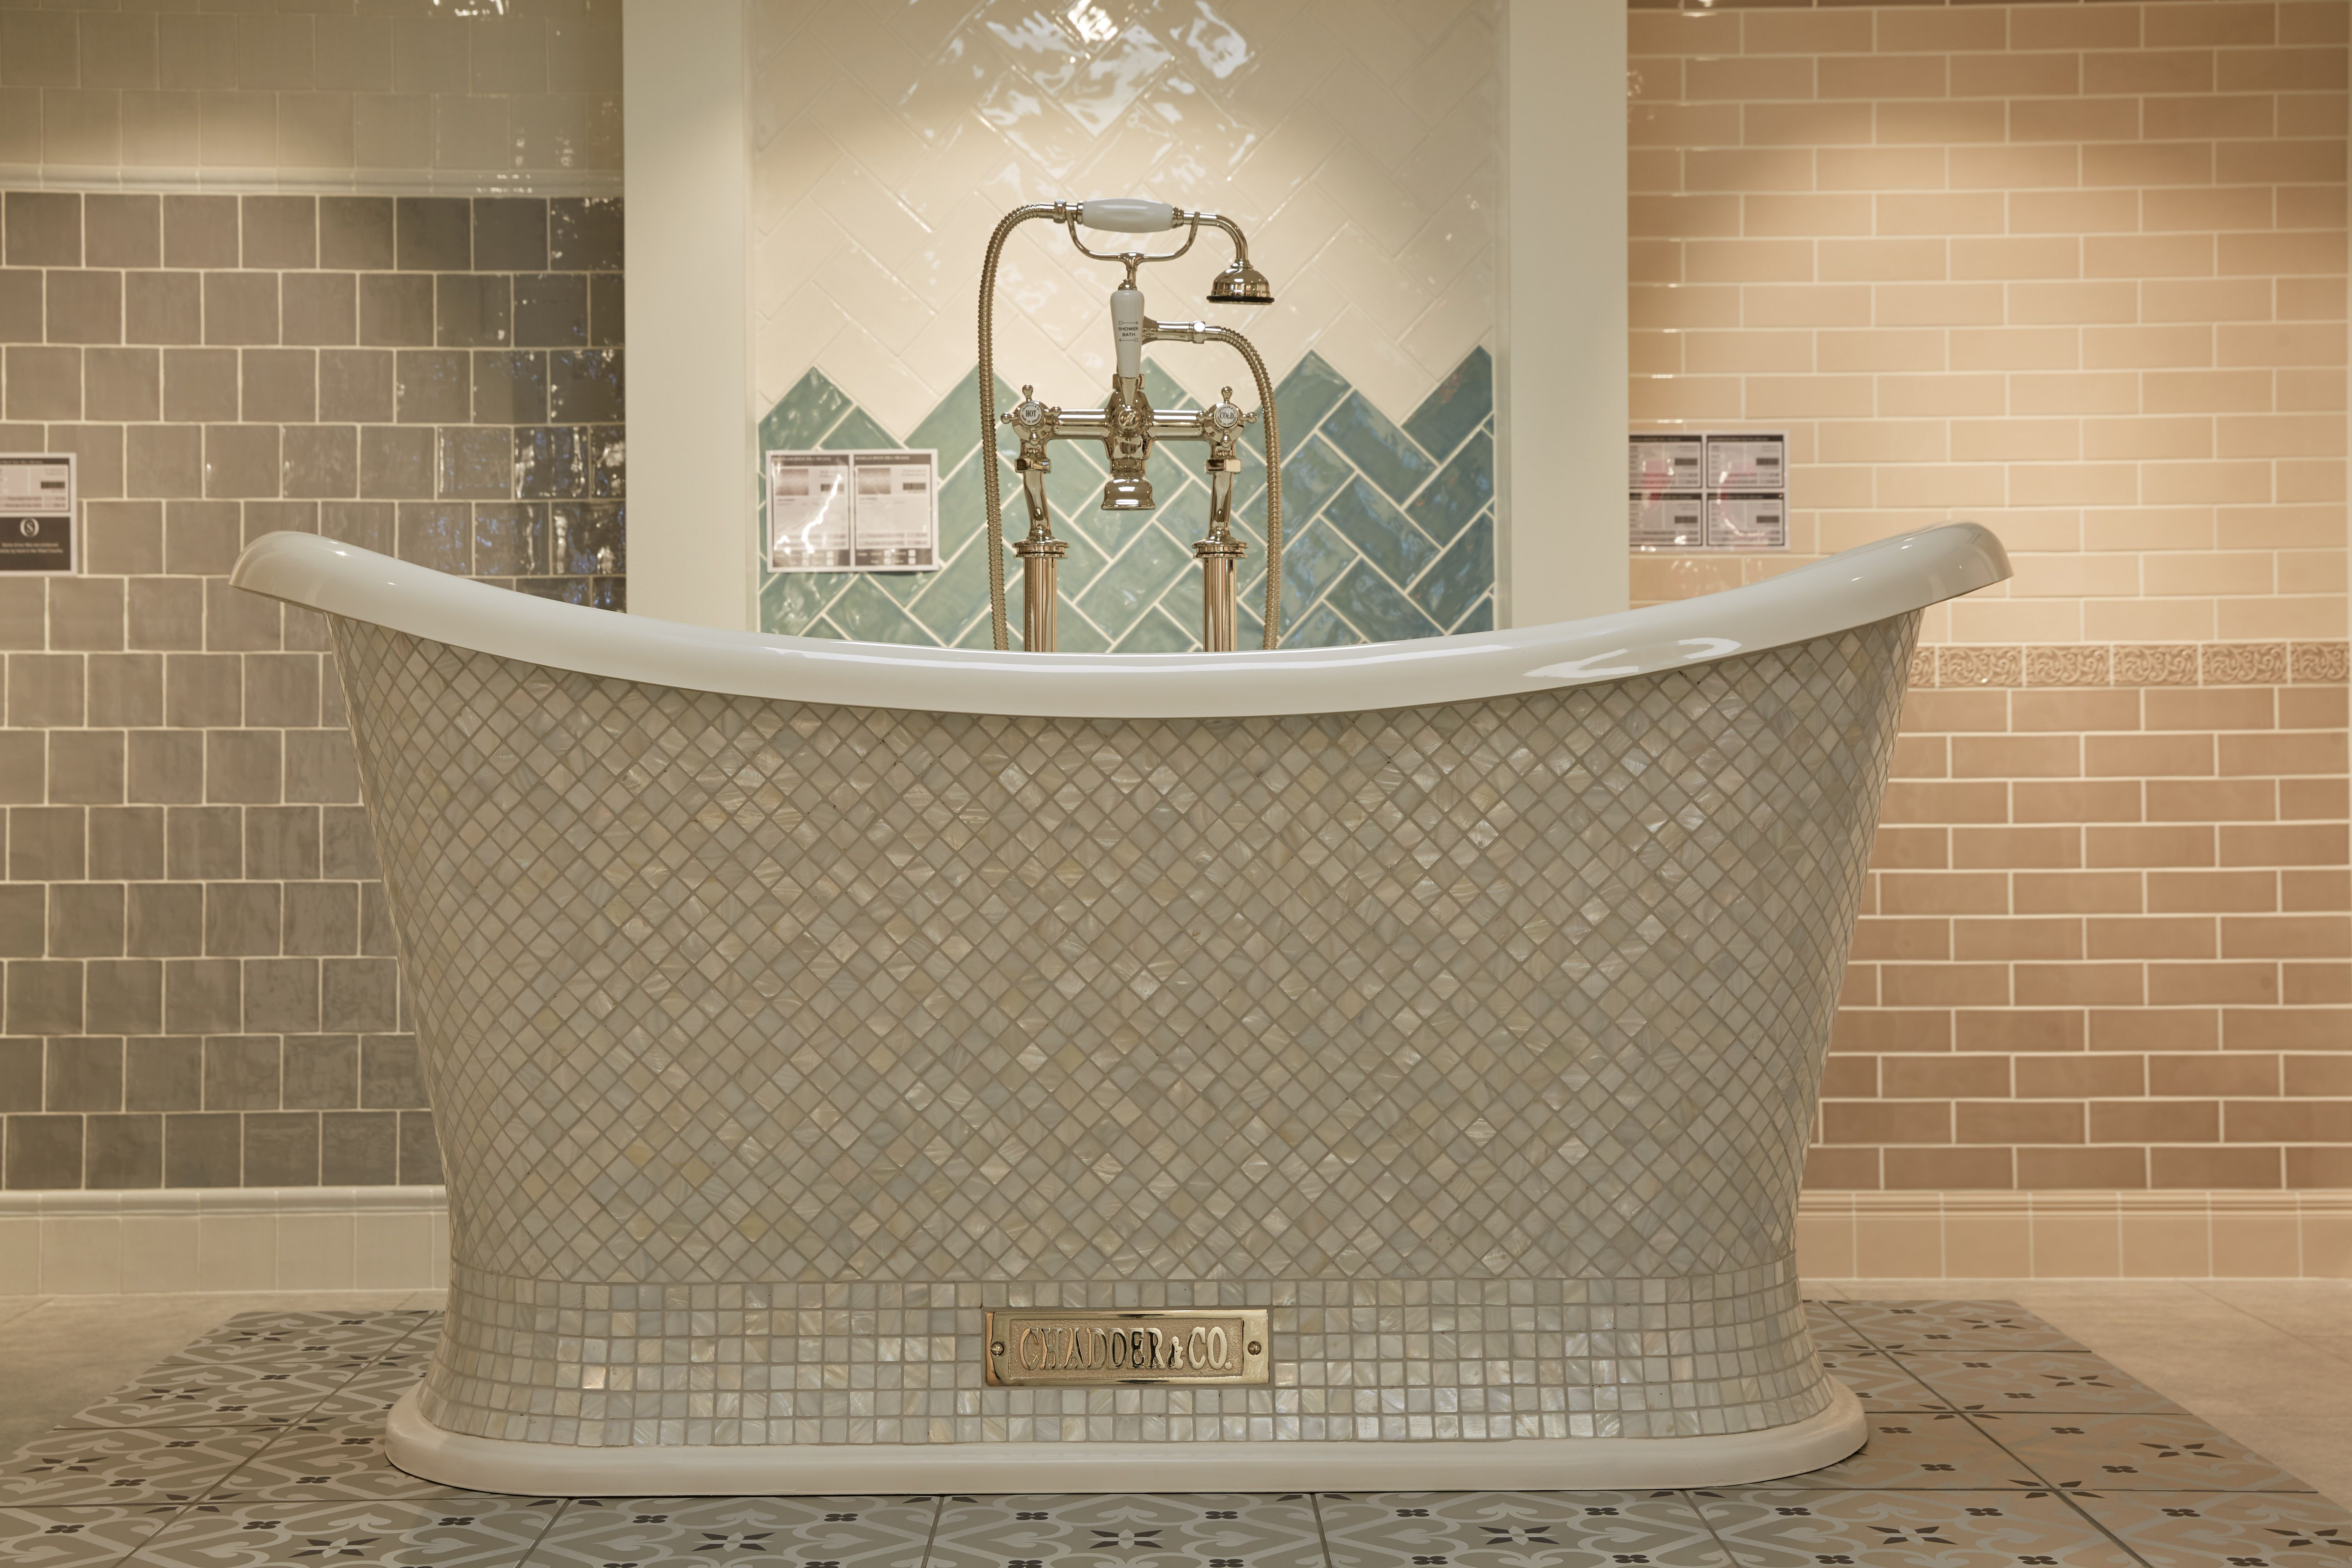 Brand new! Our Chadite Chariot Bathtub with Mother of Pearl Mosaic ...